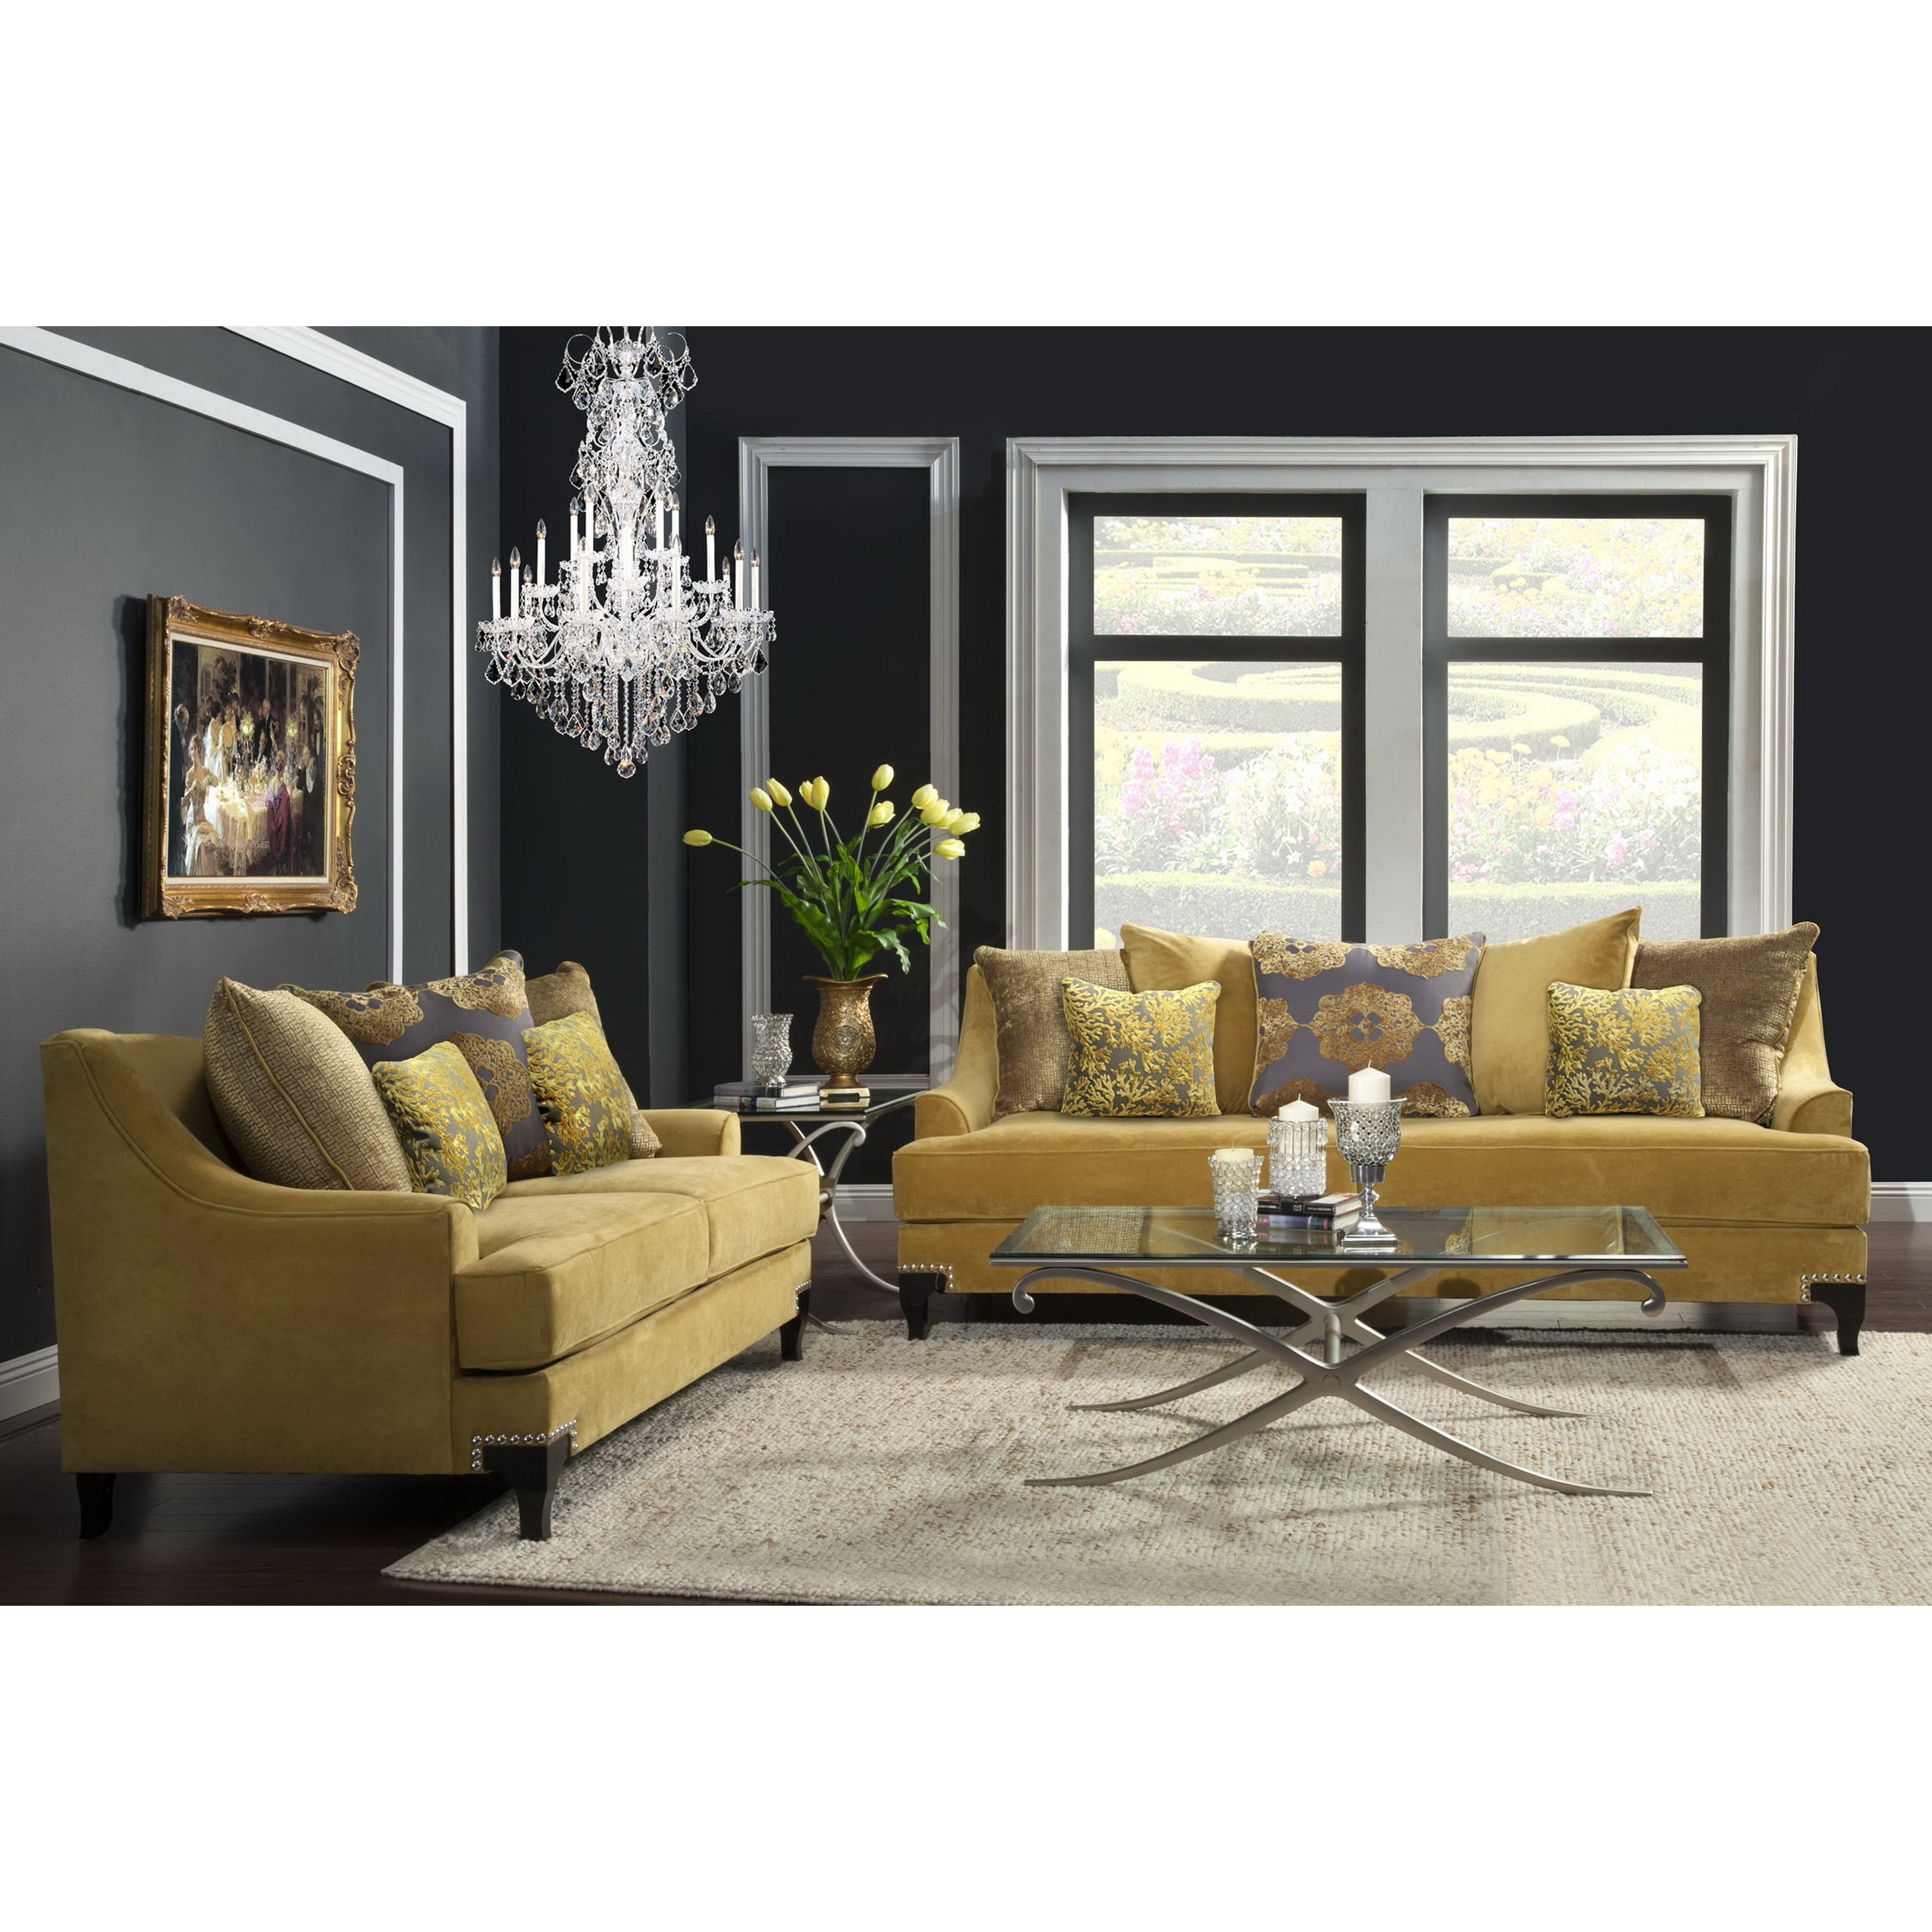 Cost To Ship Furniture Set how much does it cost to ship a sofa and loveseat | www